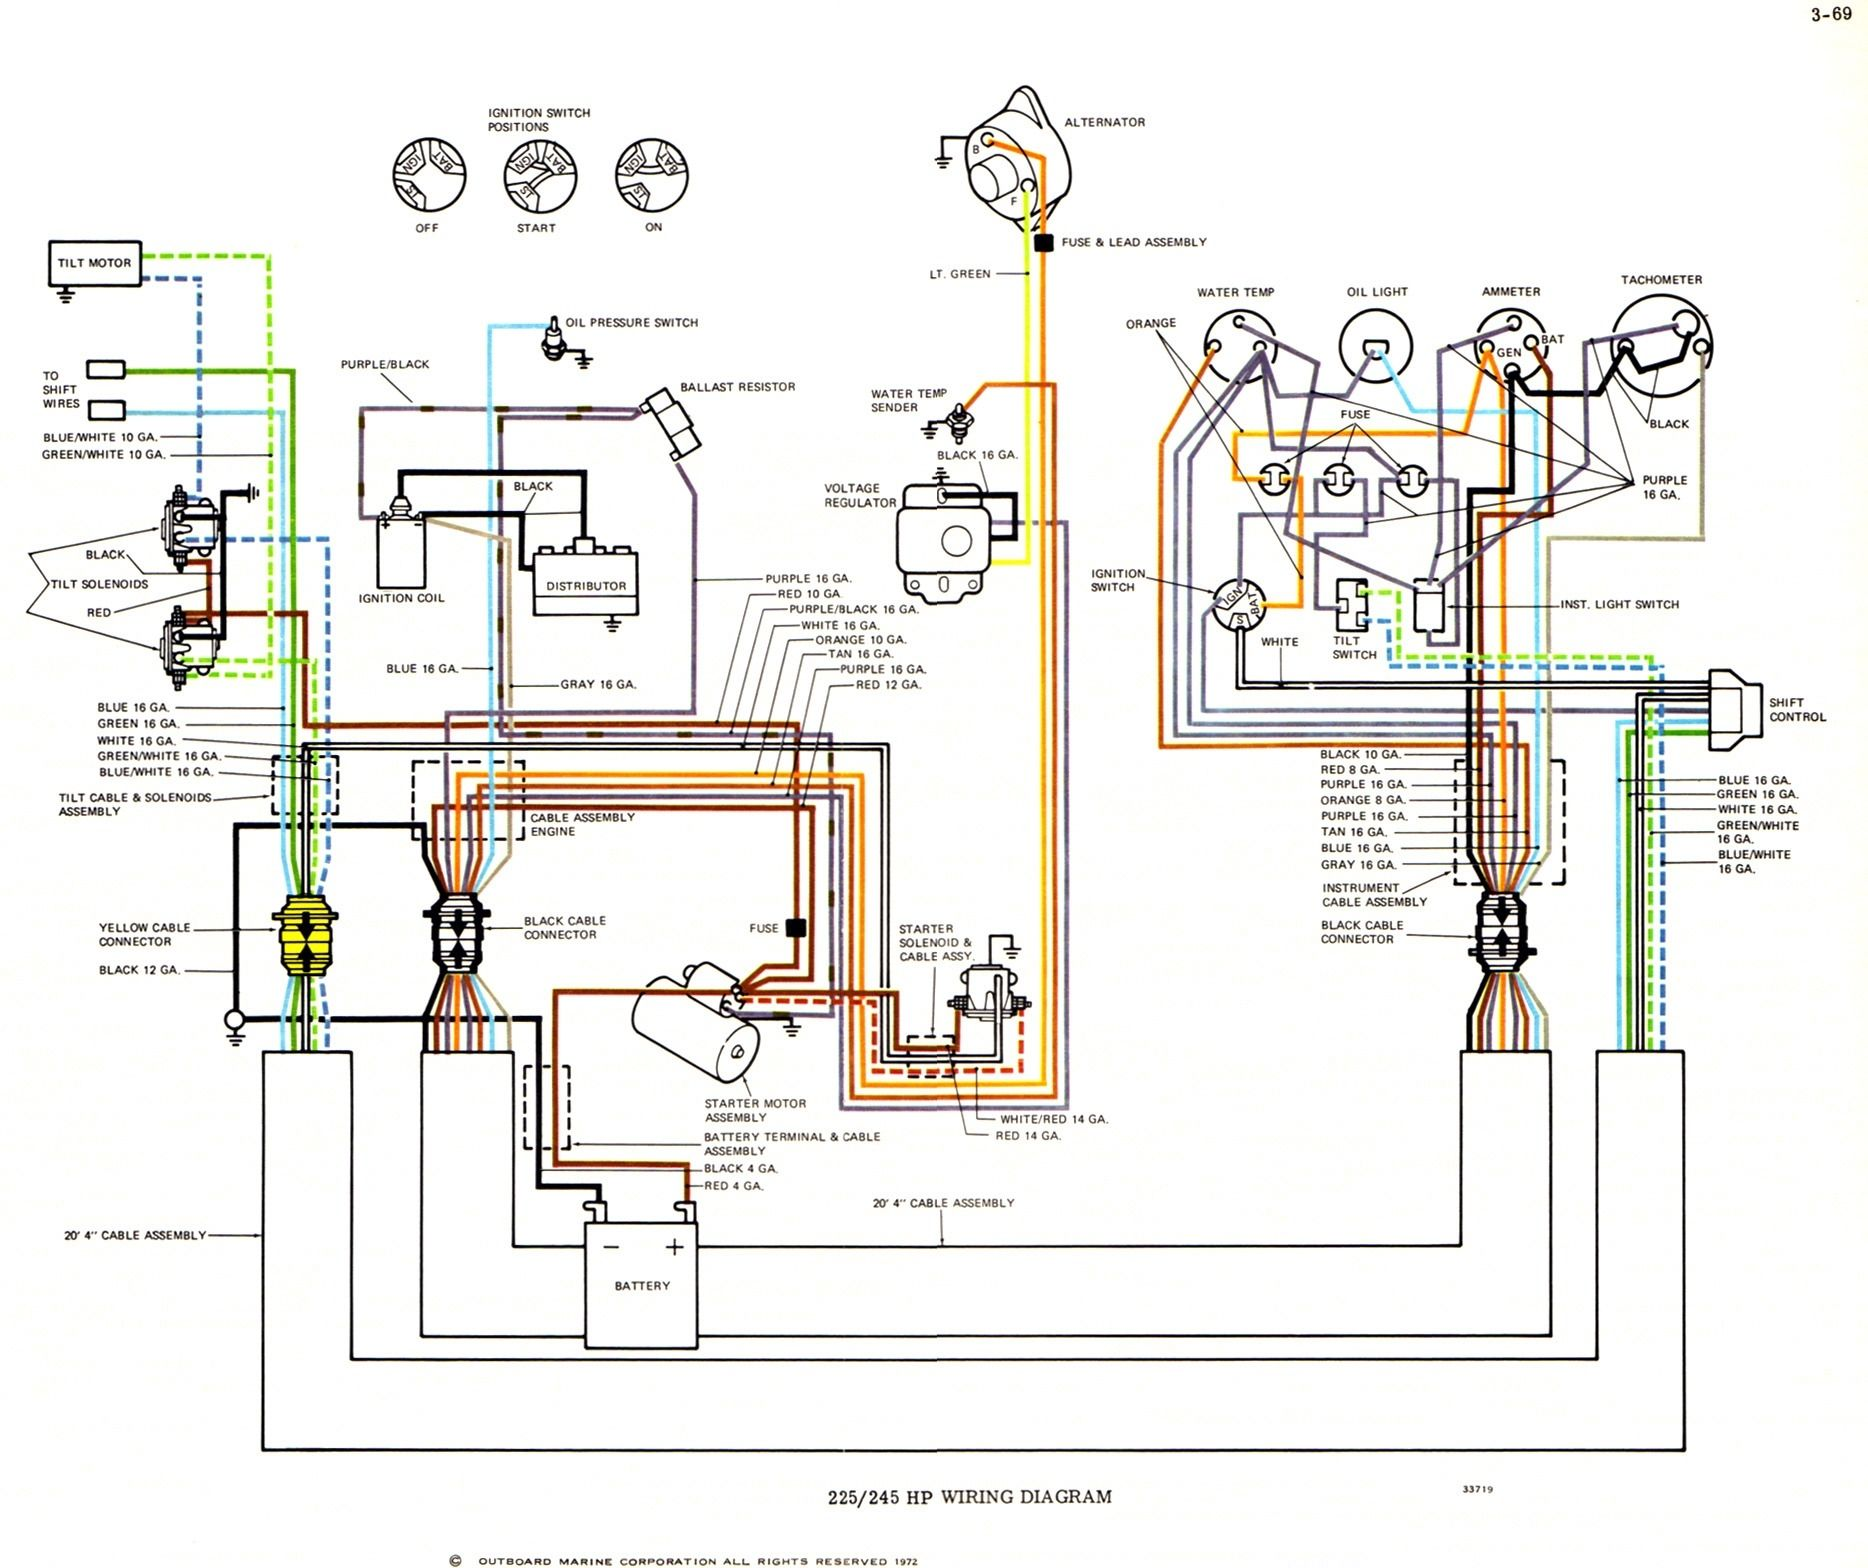 Wiring Diagram For Yamaha 115 Outboard - Wiring Diagram Img